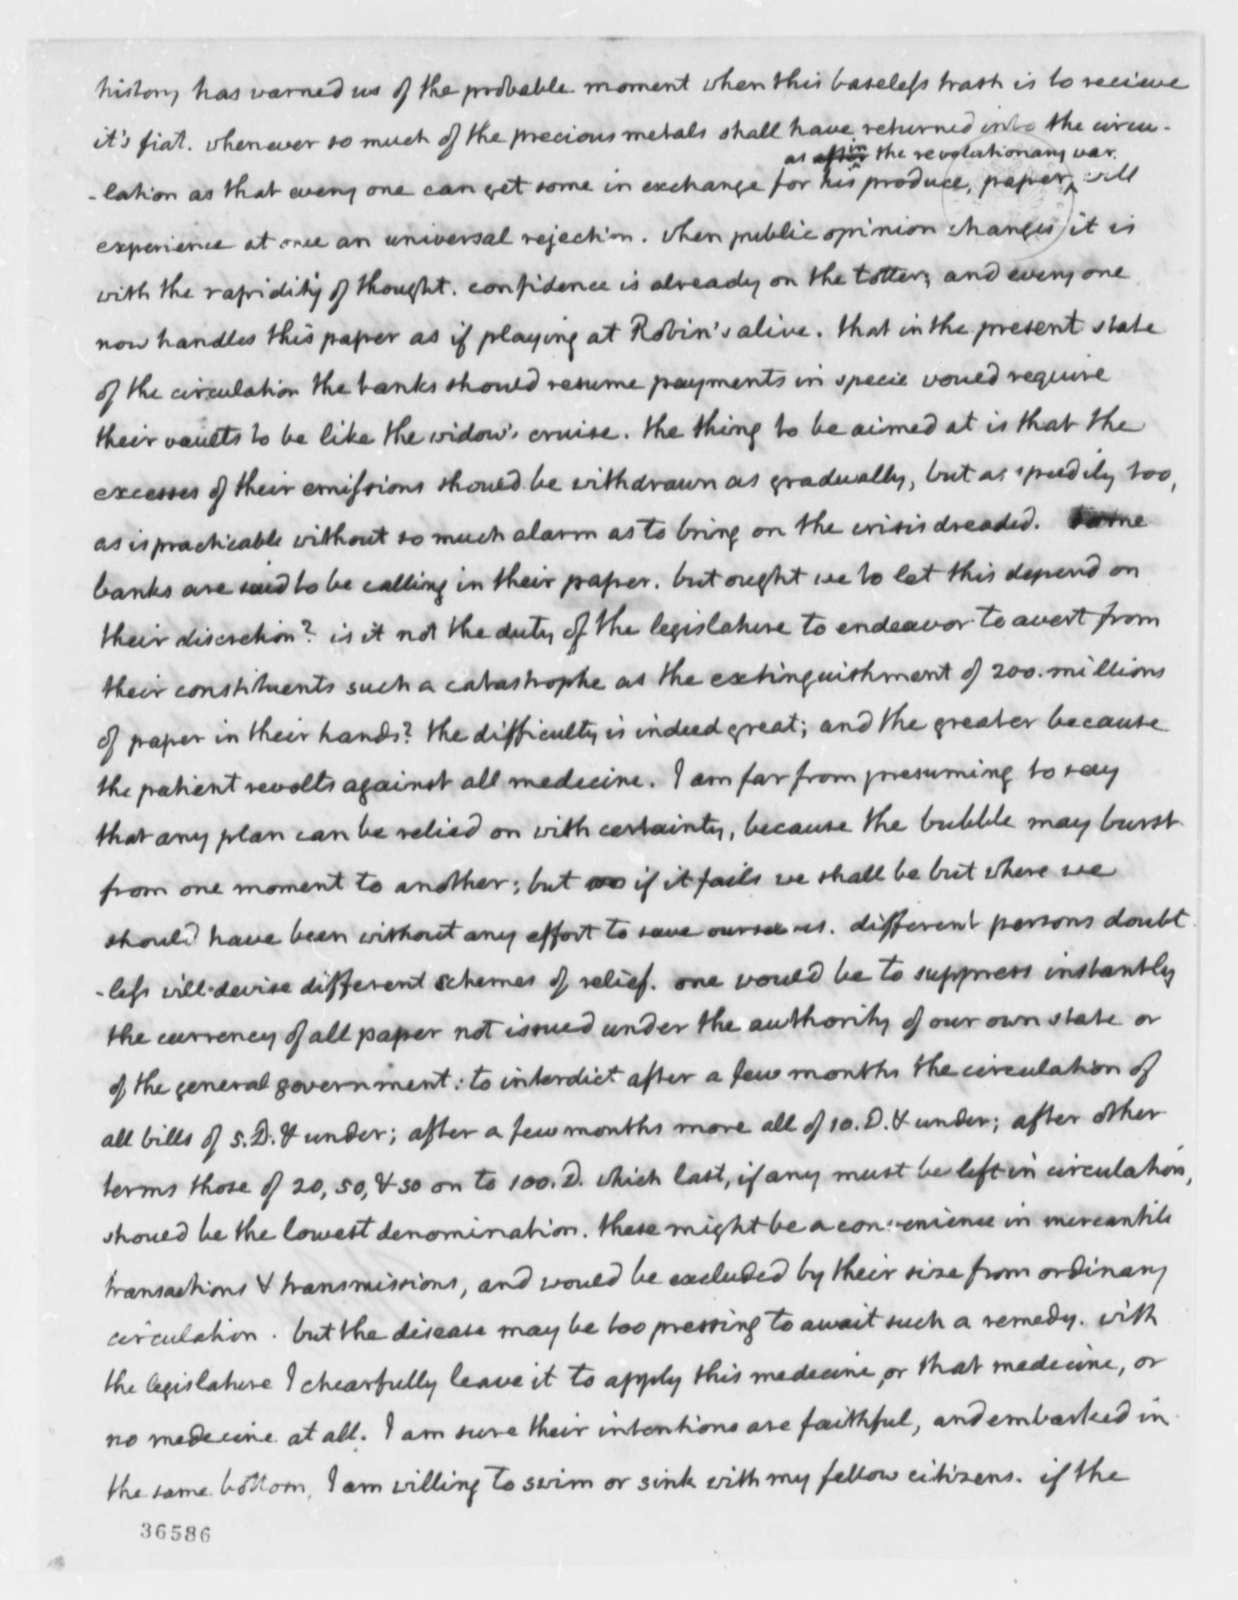 Thomas Jefferson to Charles Yancey, January 6, 1816